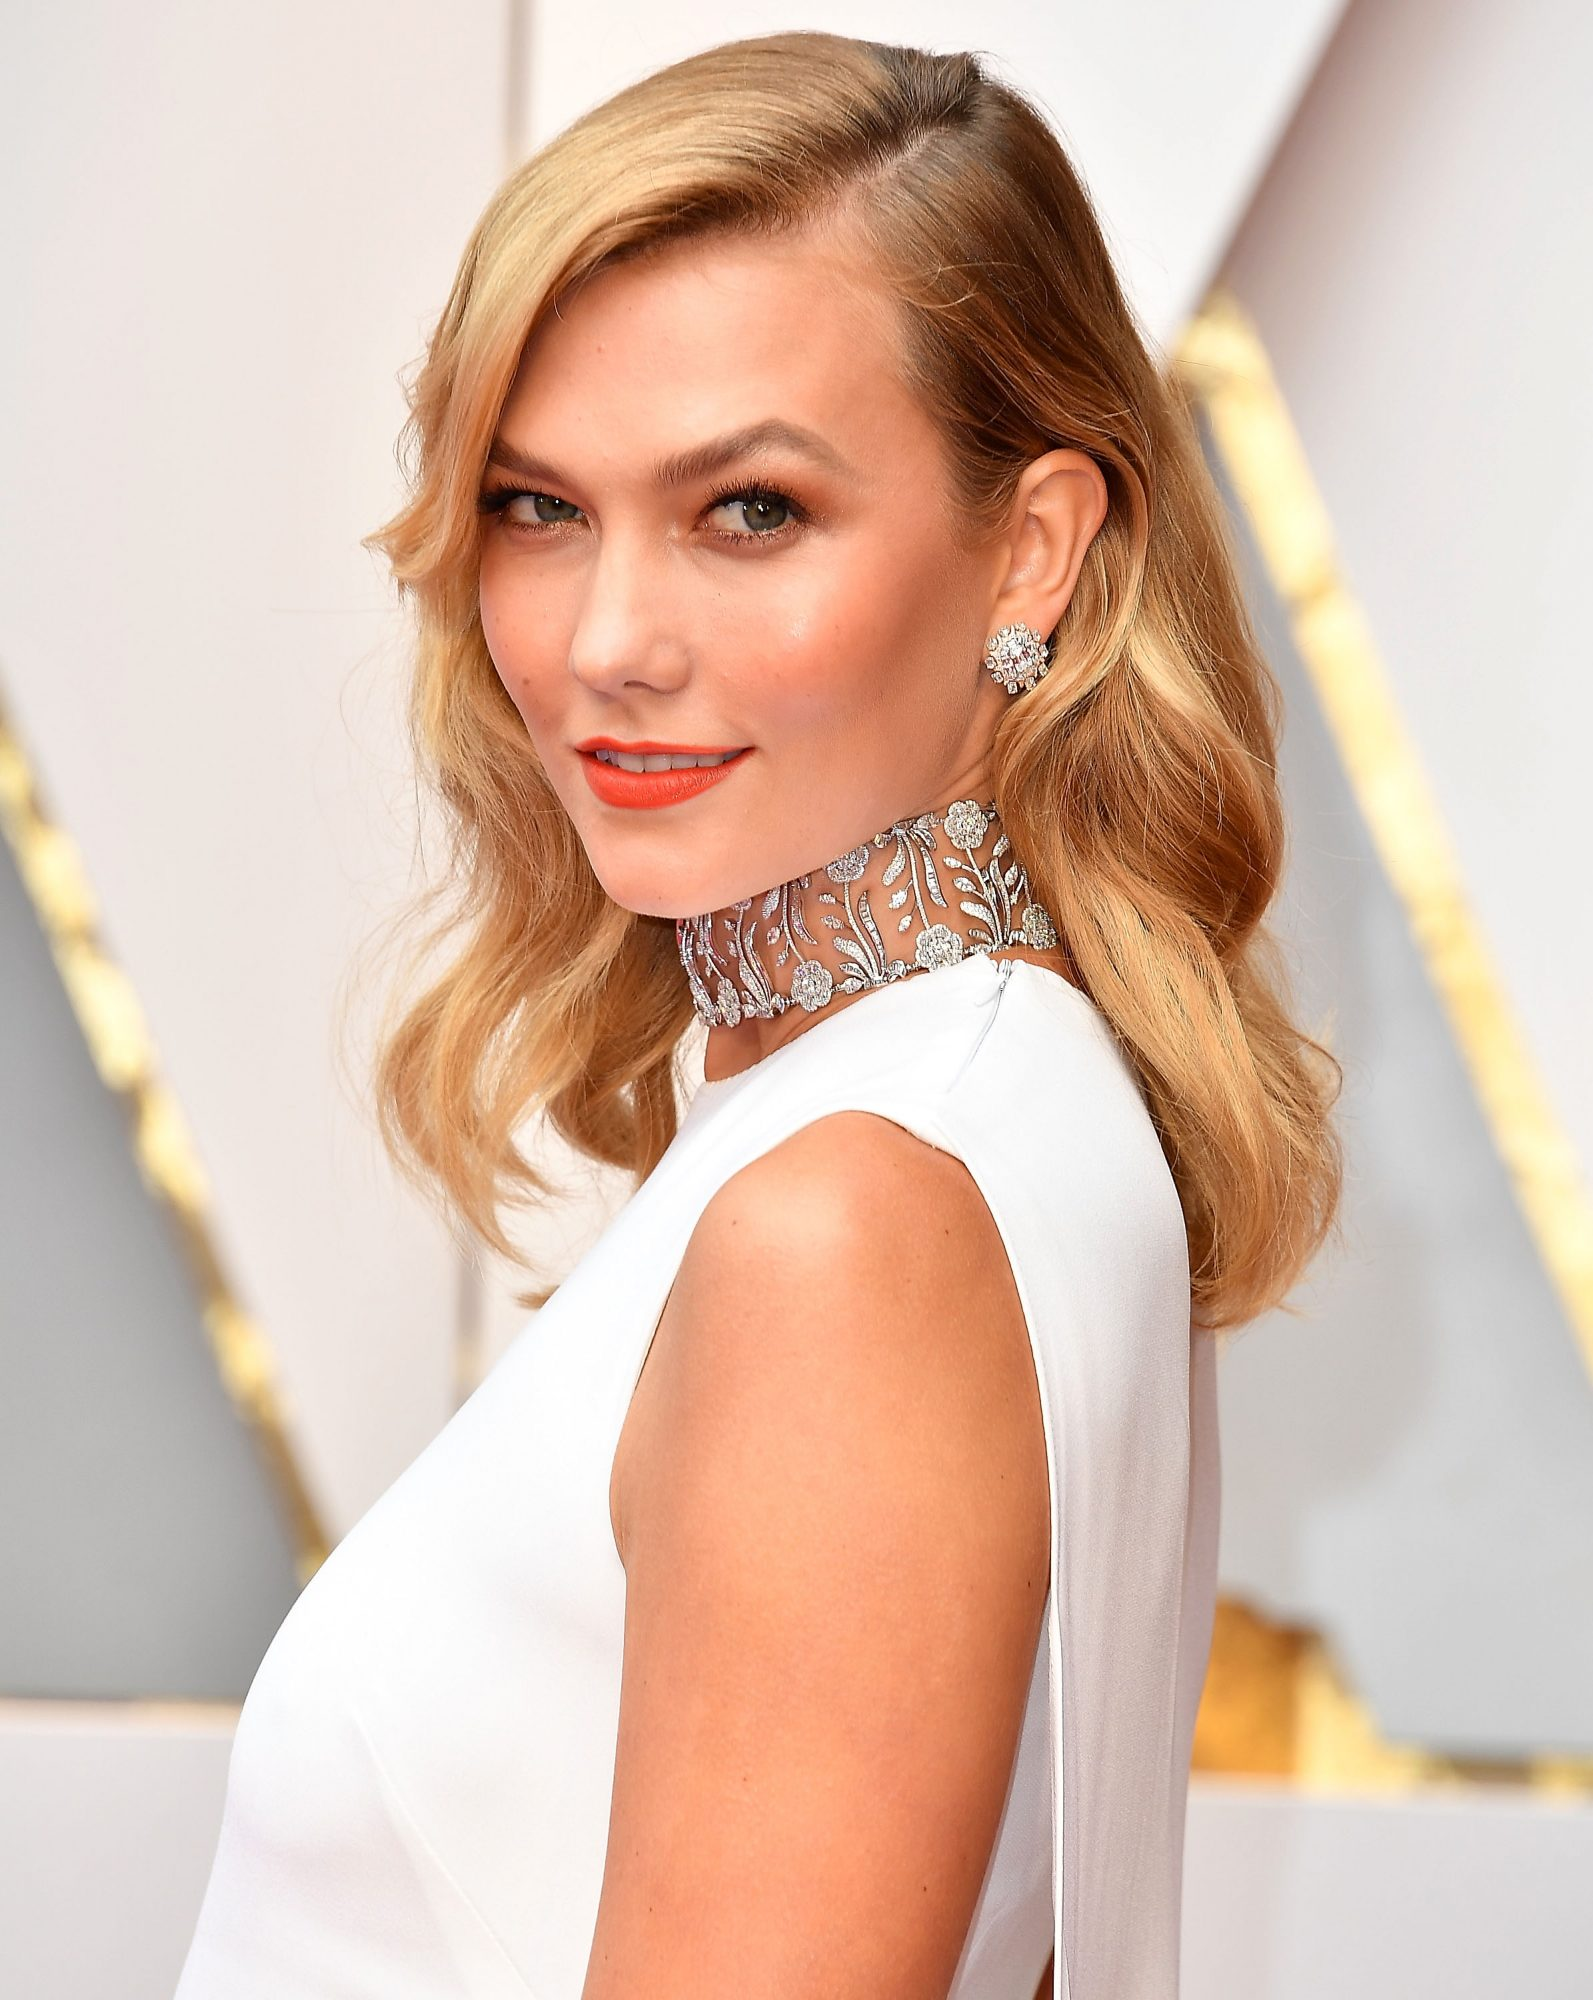 Karlie Kloss at the 89th Annual Academy Awards